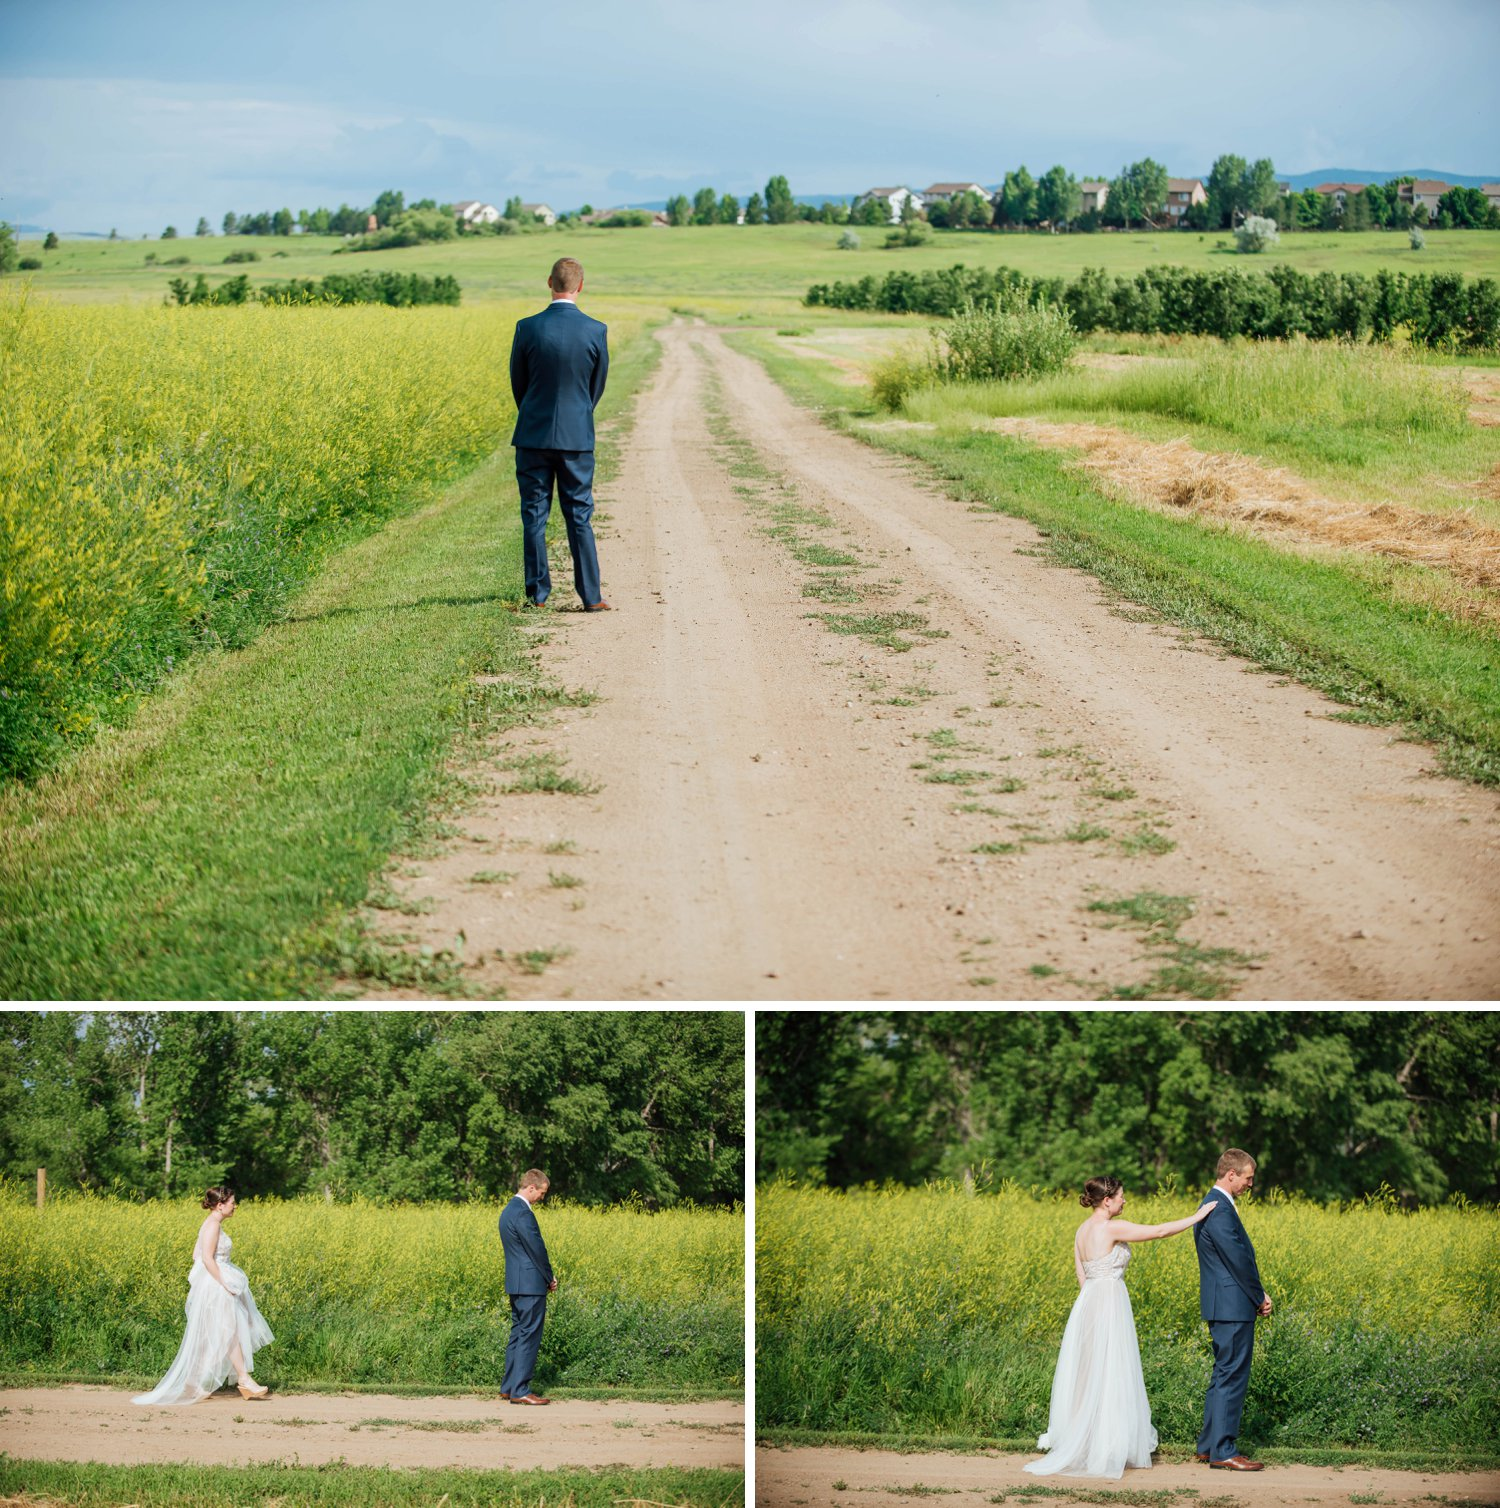 Nothing says summer wedding quite like a first look on the dirt road with meadows all around!Photo by Maddie Mae Photography